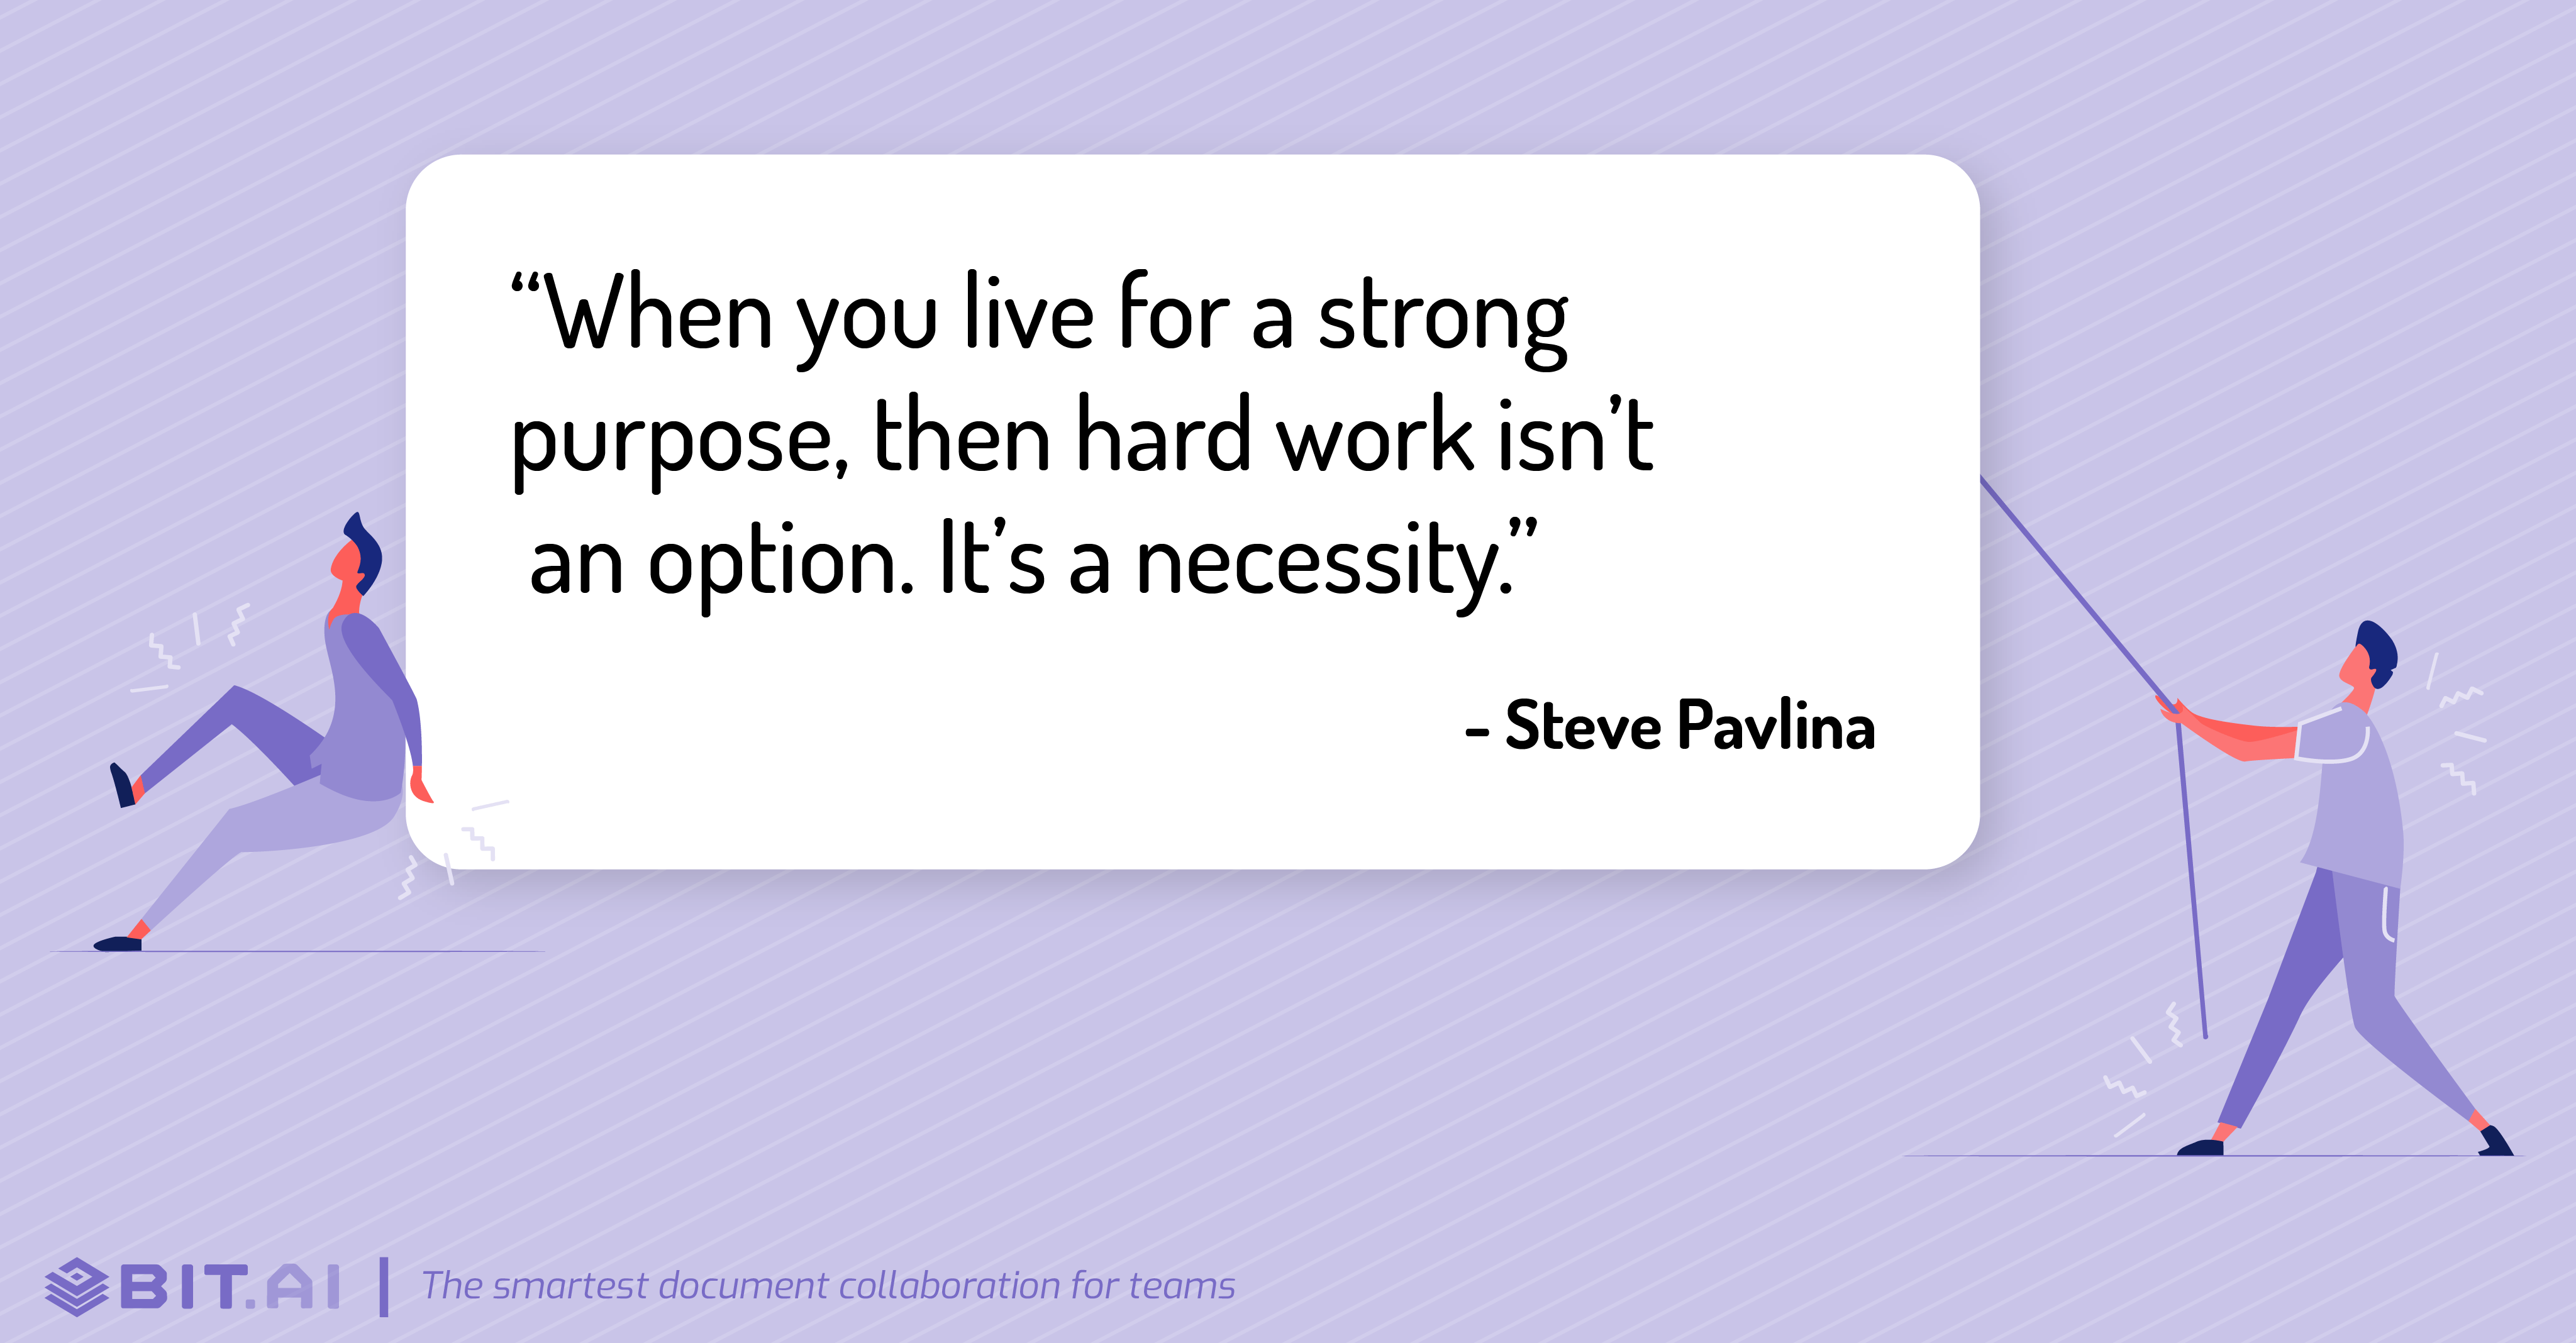 Hard work quote by Steve Pavlina